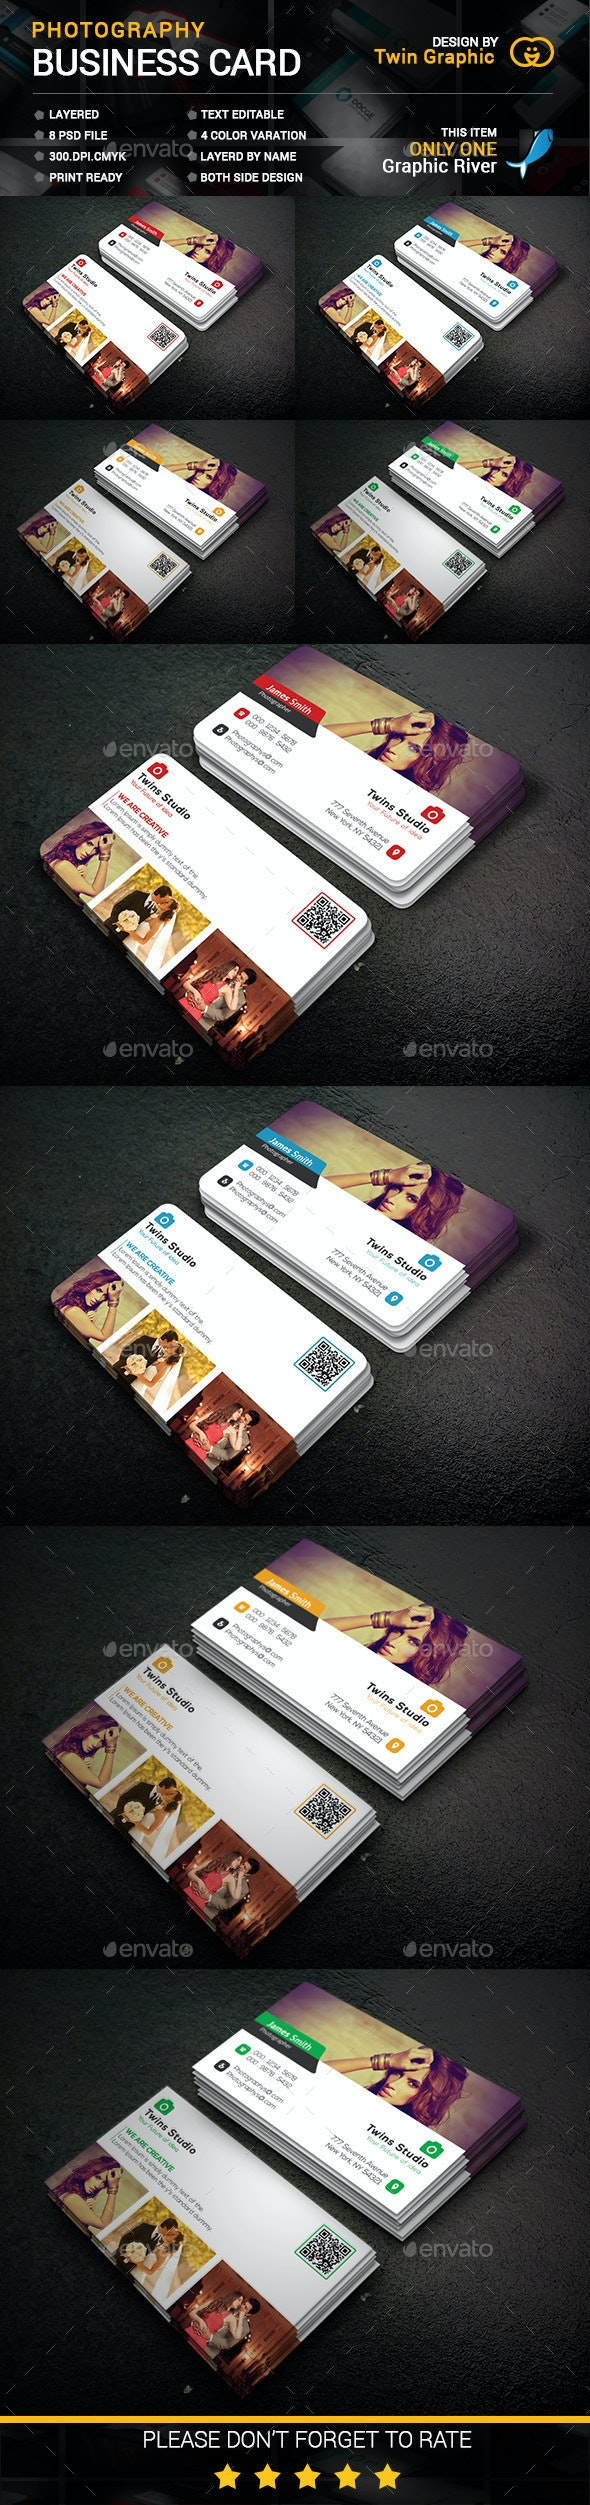 Photography Business Card Design - Business Cards Print Templates